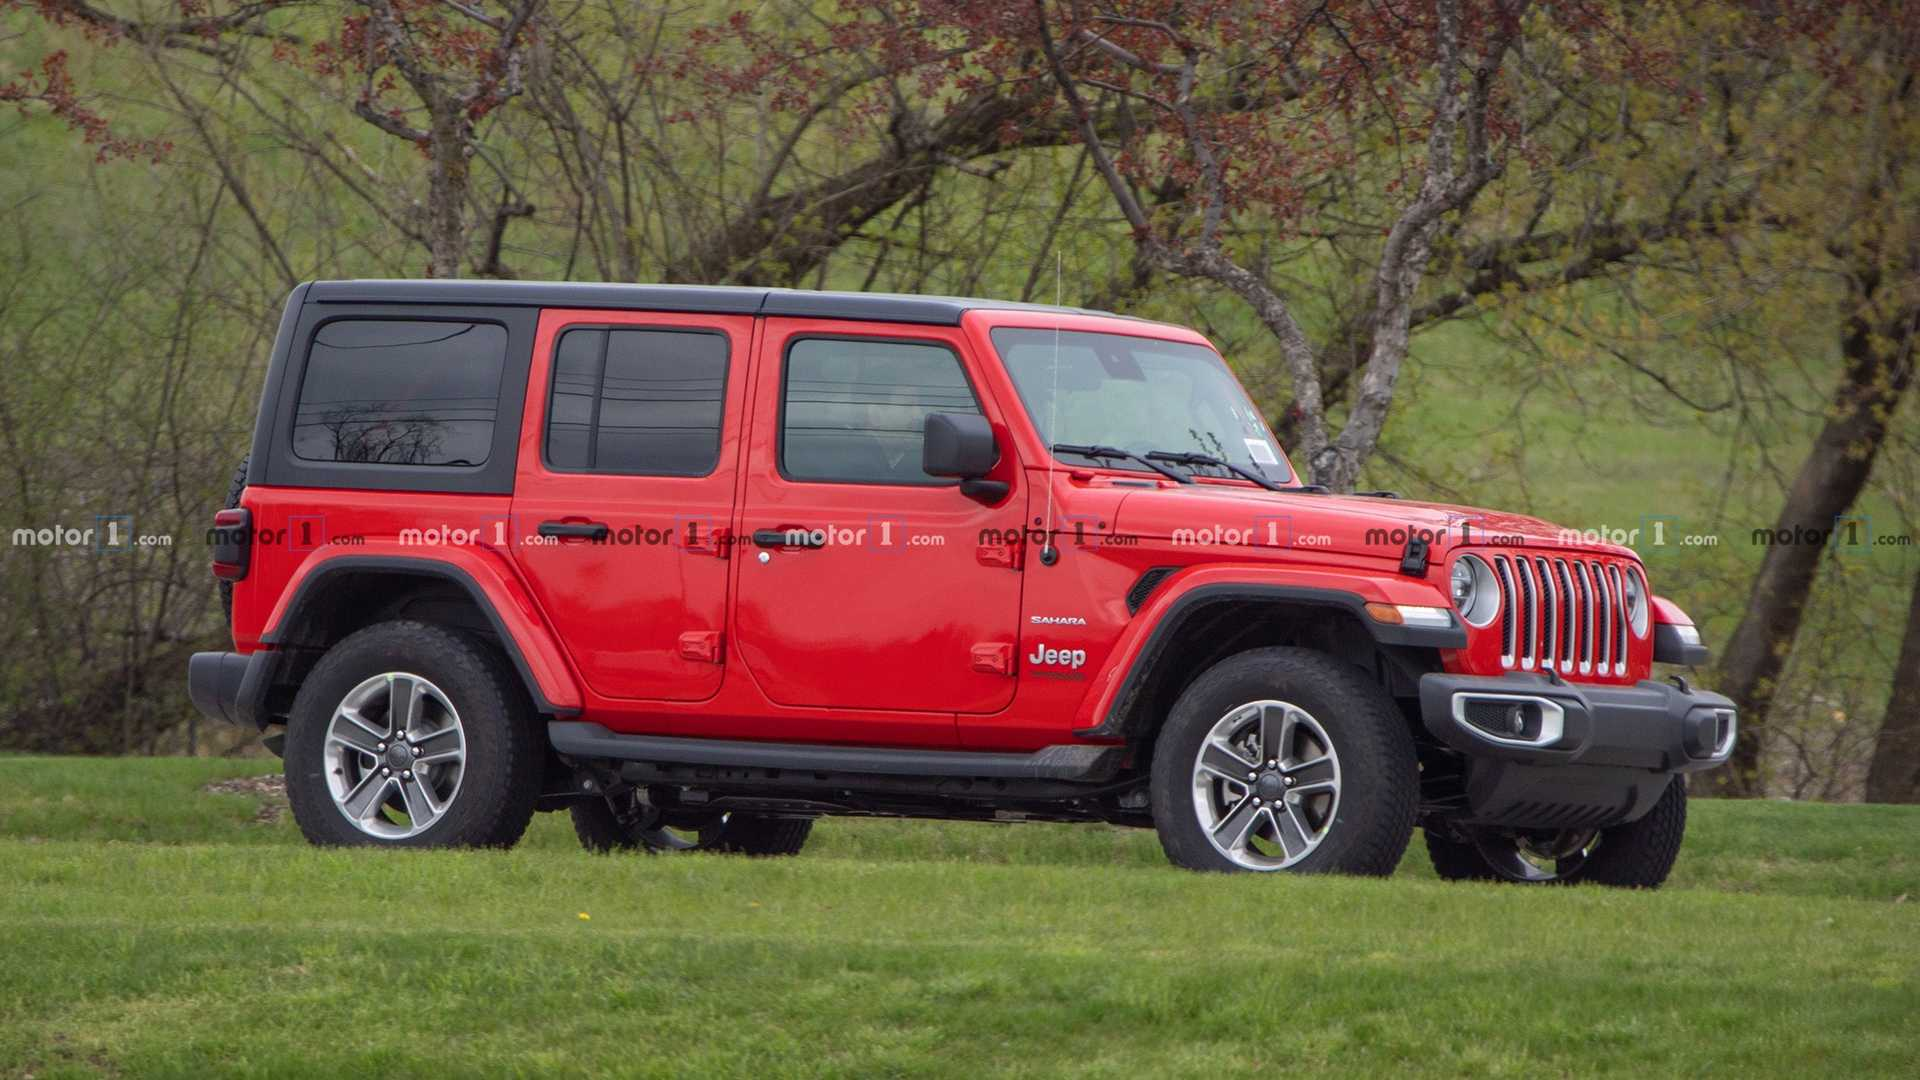 39 All New 2020 Jeep Jl Rumors Overview